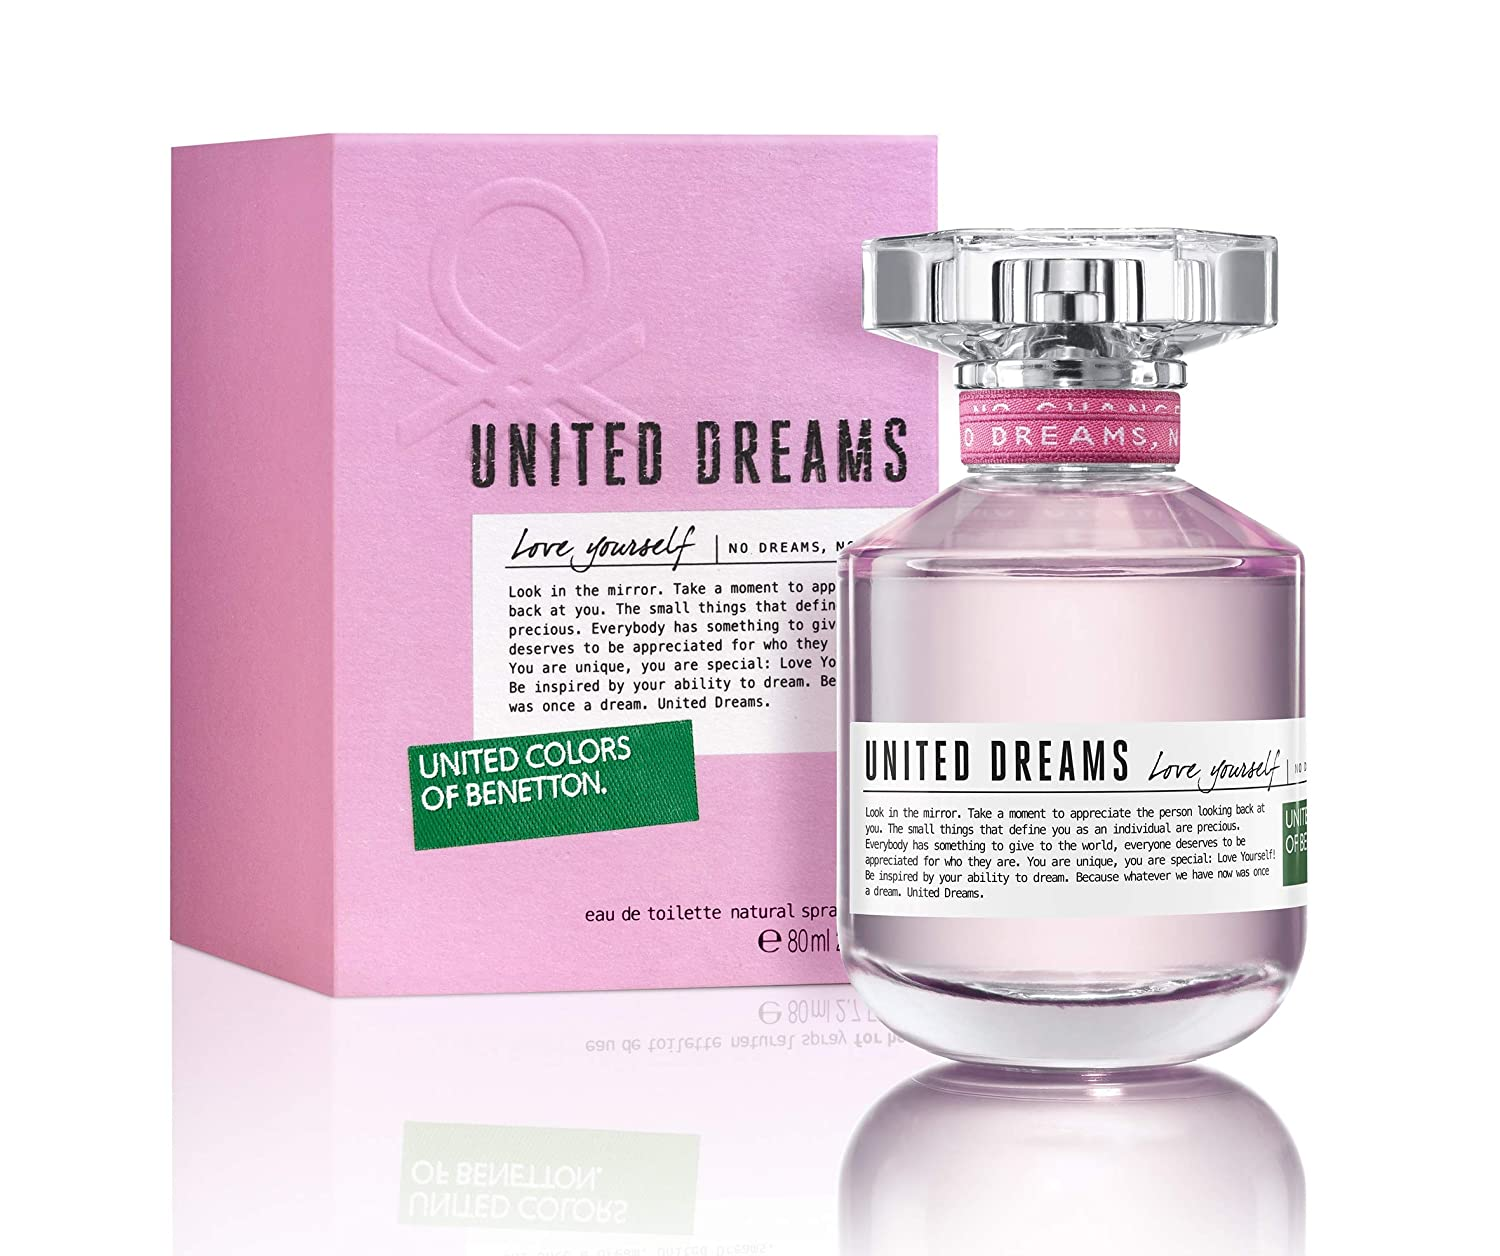 Amazon.com : Benetton United Dreams Love Yourself Eau de Toilette Spray for Women, 2.7 Ounce : Beauty